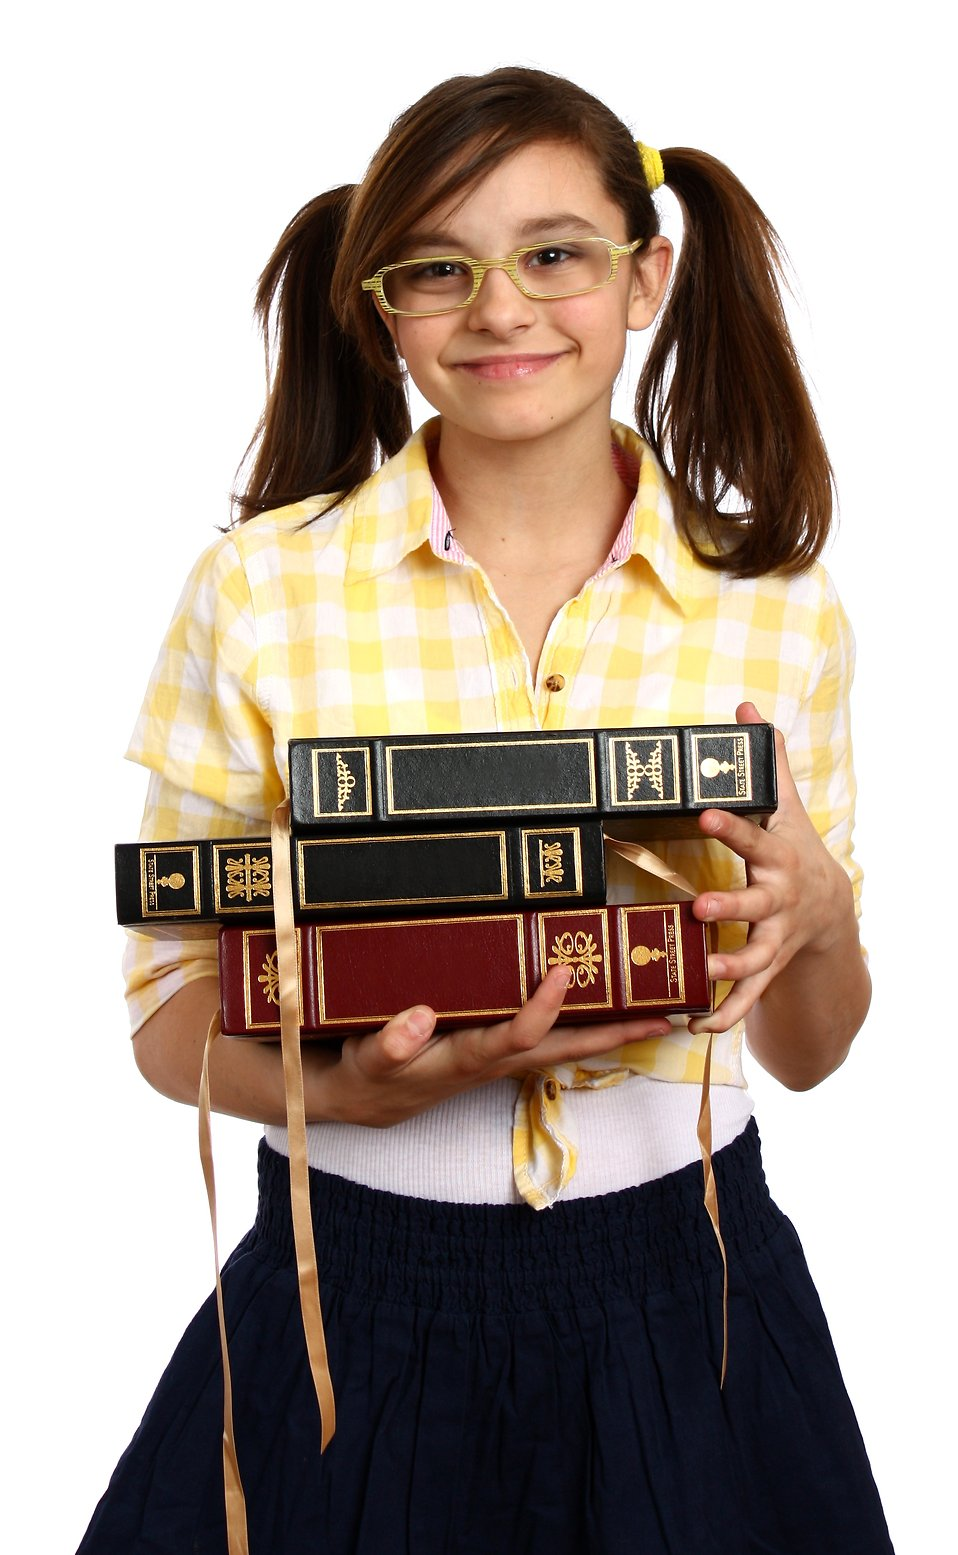 A smart girl with glasses holding a stack of books : Free Stock Photo